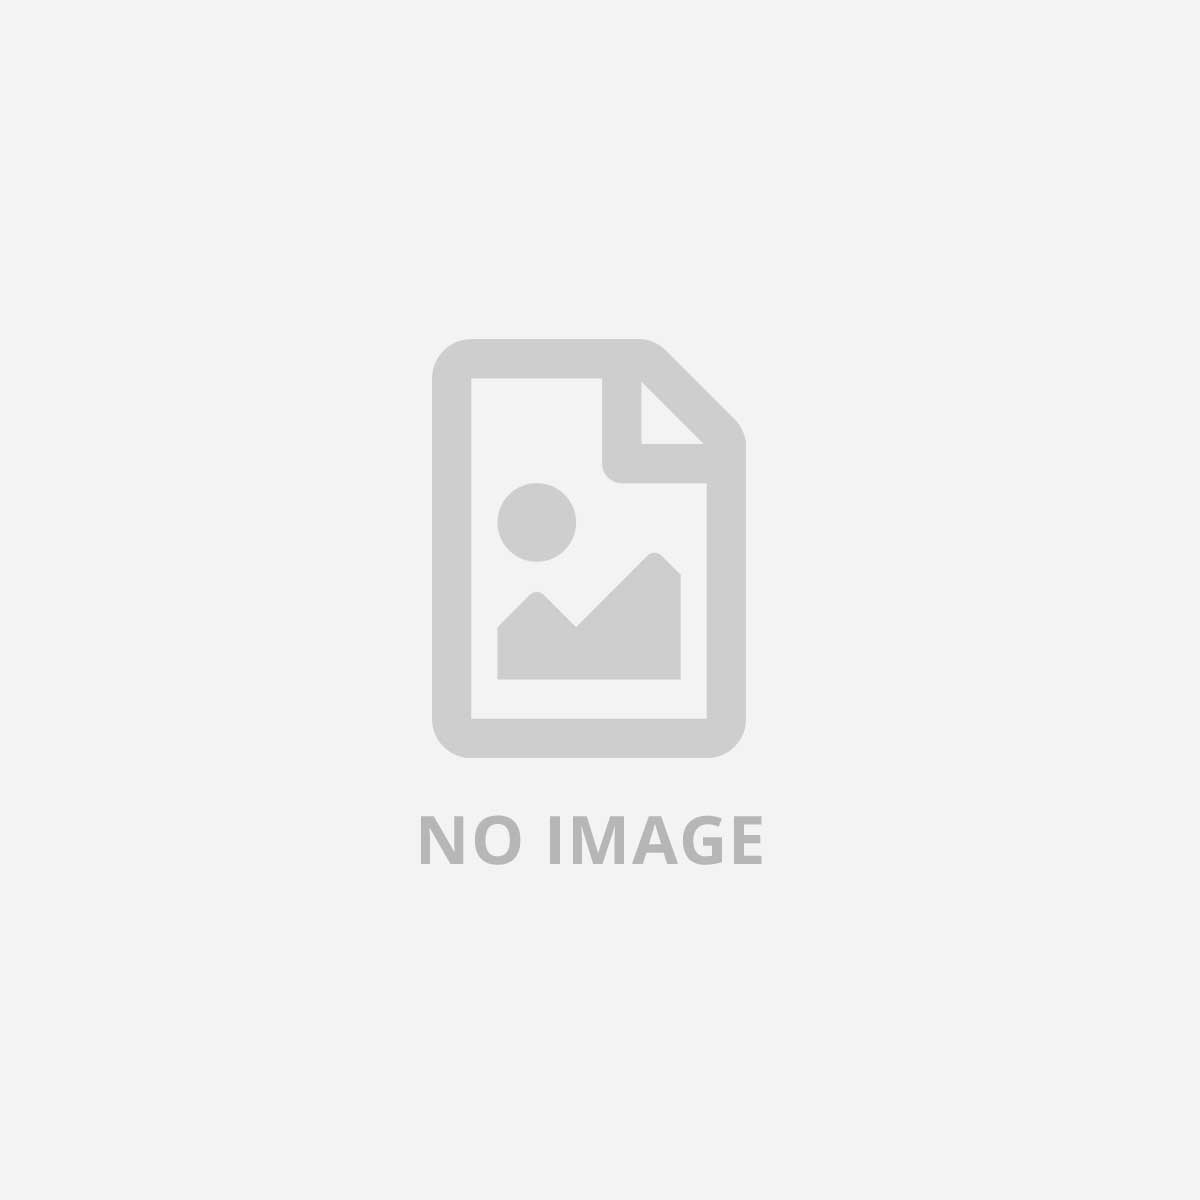 OH AIR PURIFICATORE D ARIA MY SPACE